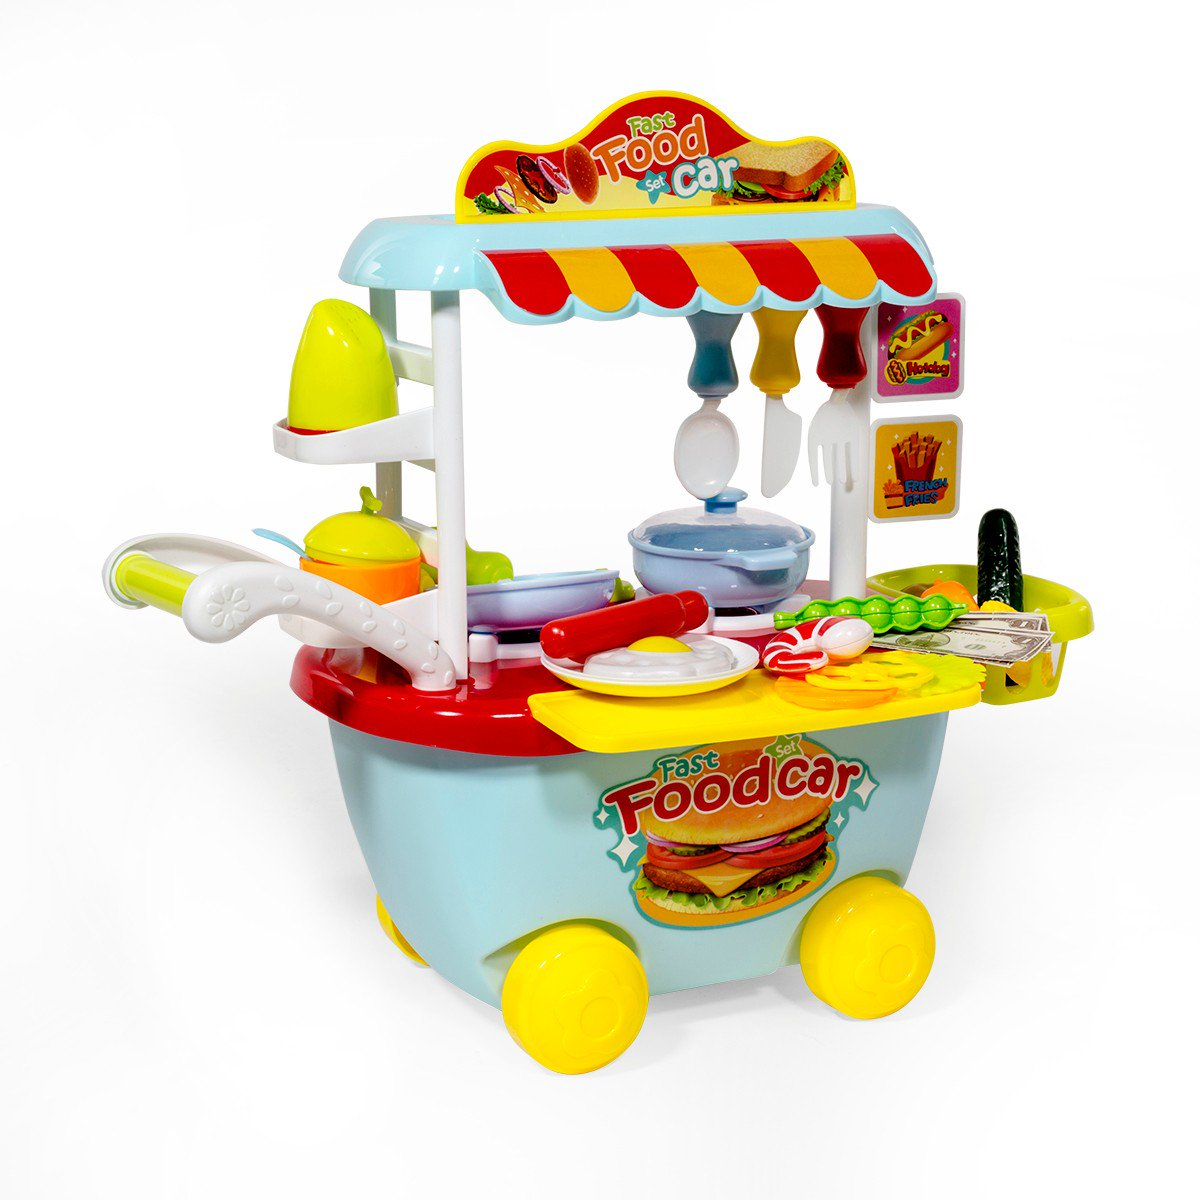 Ihubdeal Fast Food Trolley Cart Play Kitchen Set   Pretend Play Toy Set For  Kids With Kitchen Tools, Fast Food Car, Assorted Play Foods, Dishes, Pot ...